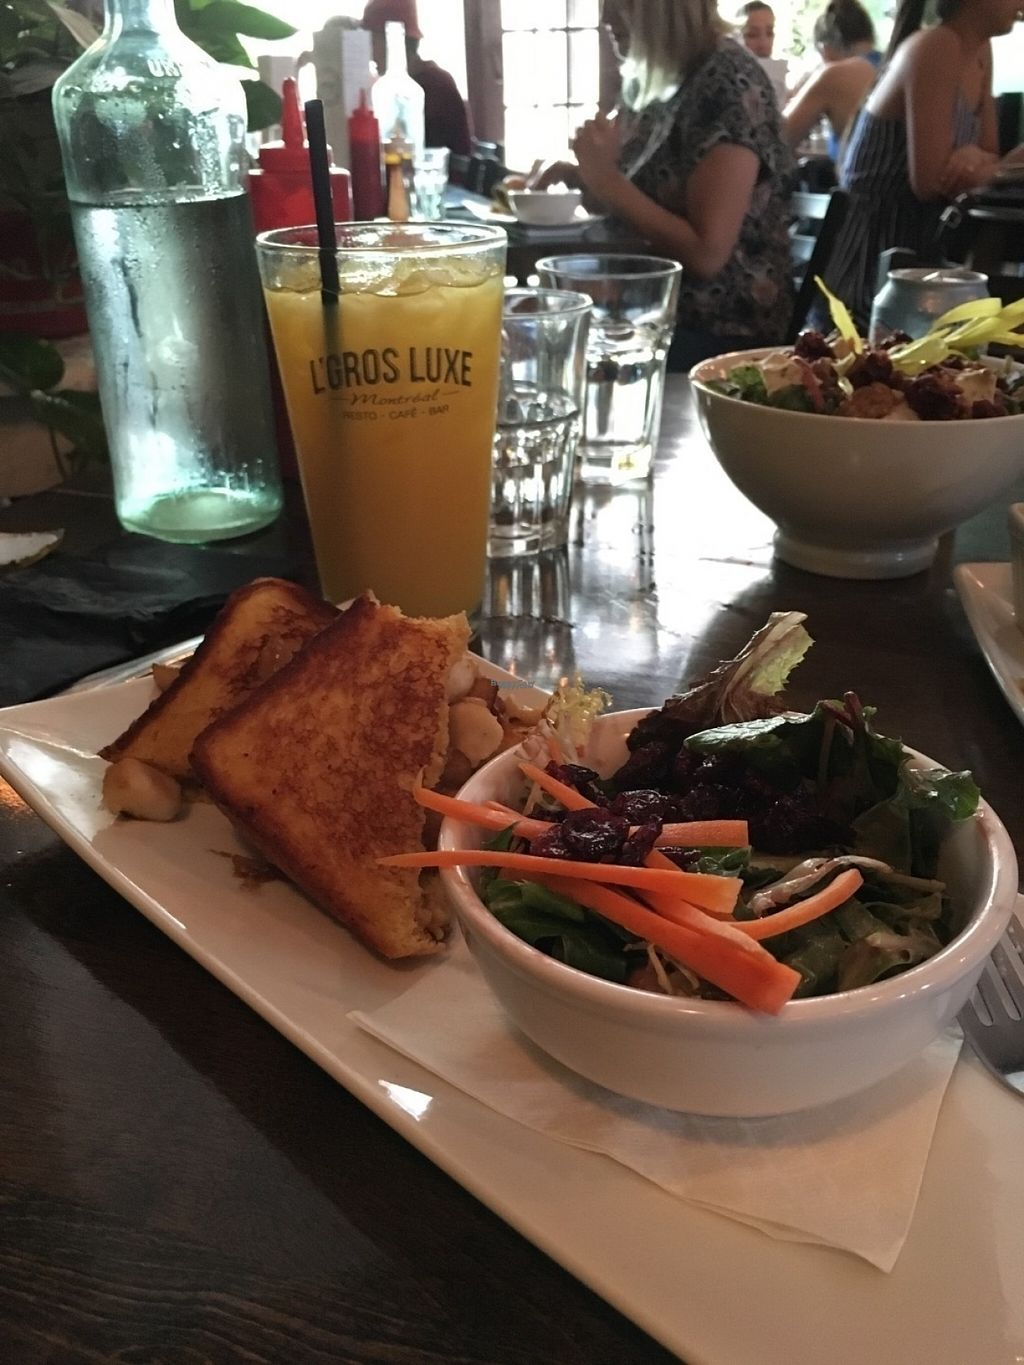 """Photo of CLOSED: L'Gros Luxe 100% Vege  by <a href=""""/members/profile/Veganikismyname"""">Veganikismyname</a> <br/>Omg their poutine grilled cheese sandwich is to die for! <br/> August 23, 2016  - <a href='/contact/abuse/image/75664/170856'>Report</a>"""